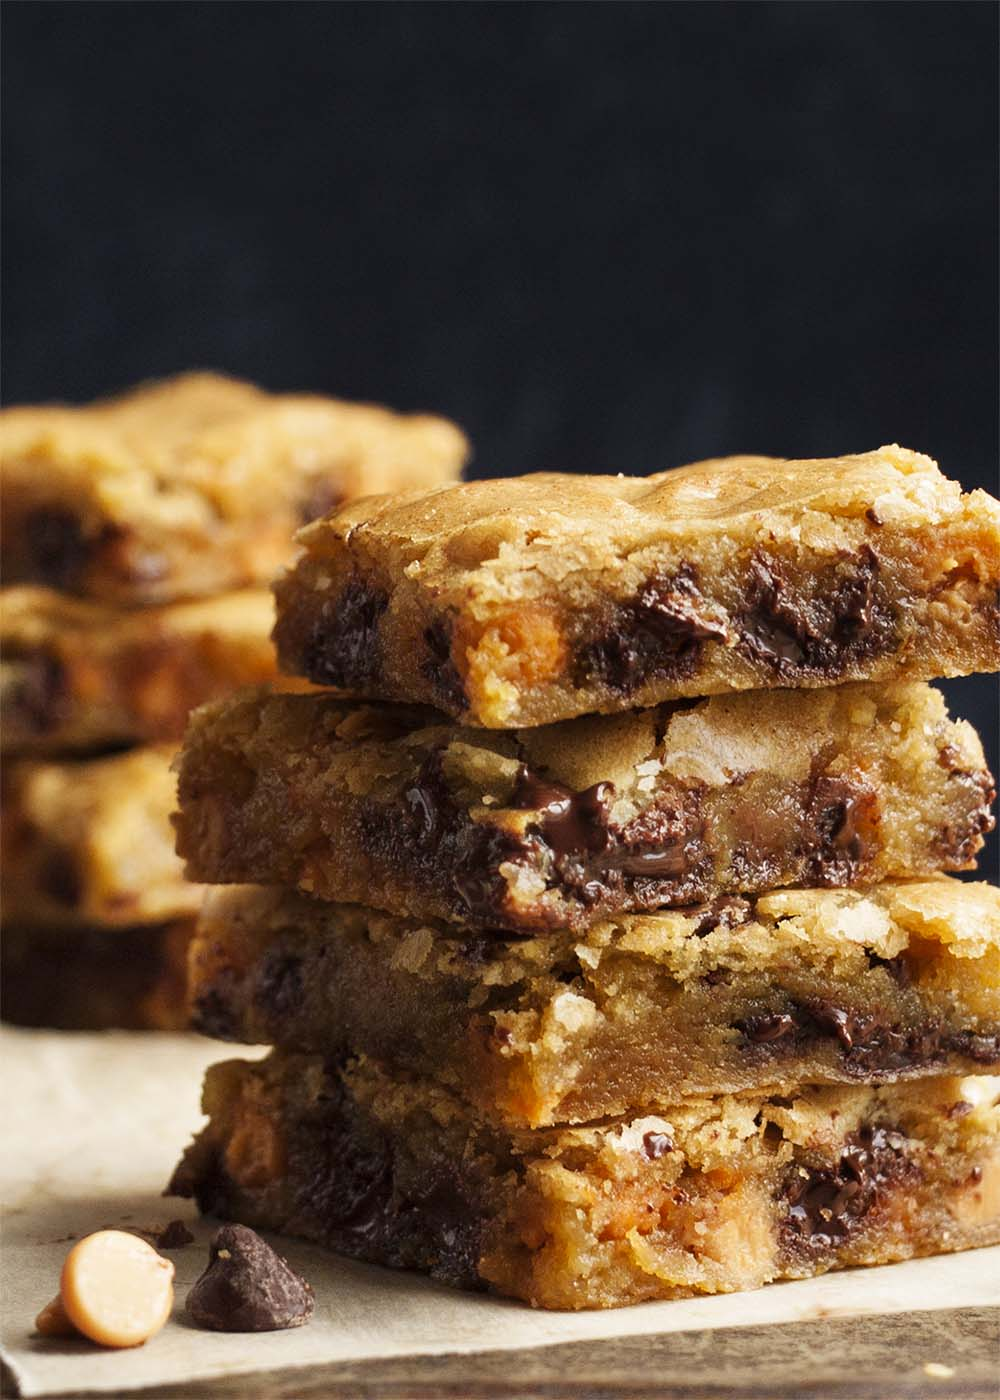 Chocolate Chip Butterscotch Bars - These one bowl bars have all the comfort of an old-fashioned butterscotch bar and the added pleasure of gooey chocolate chips in every bite.   justalittlebitofbacon.com